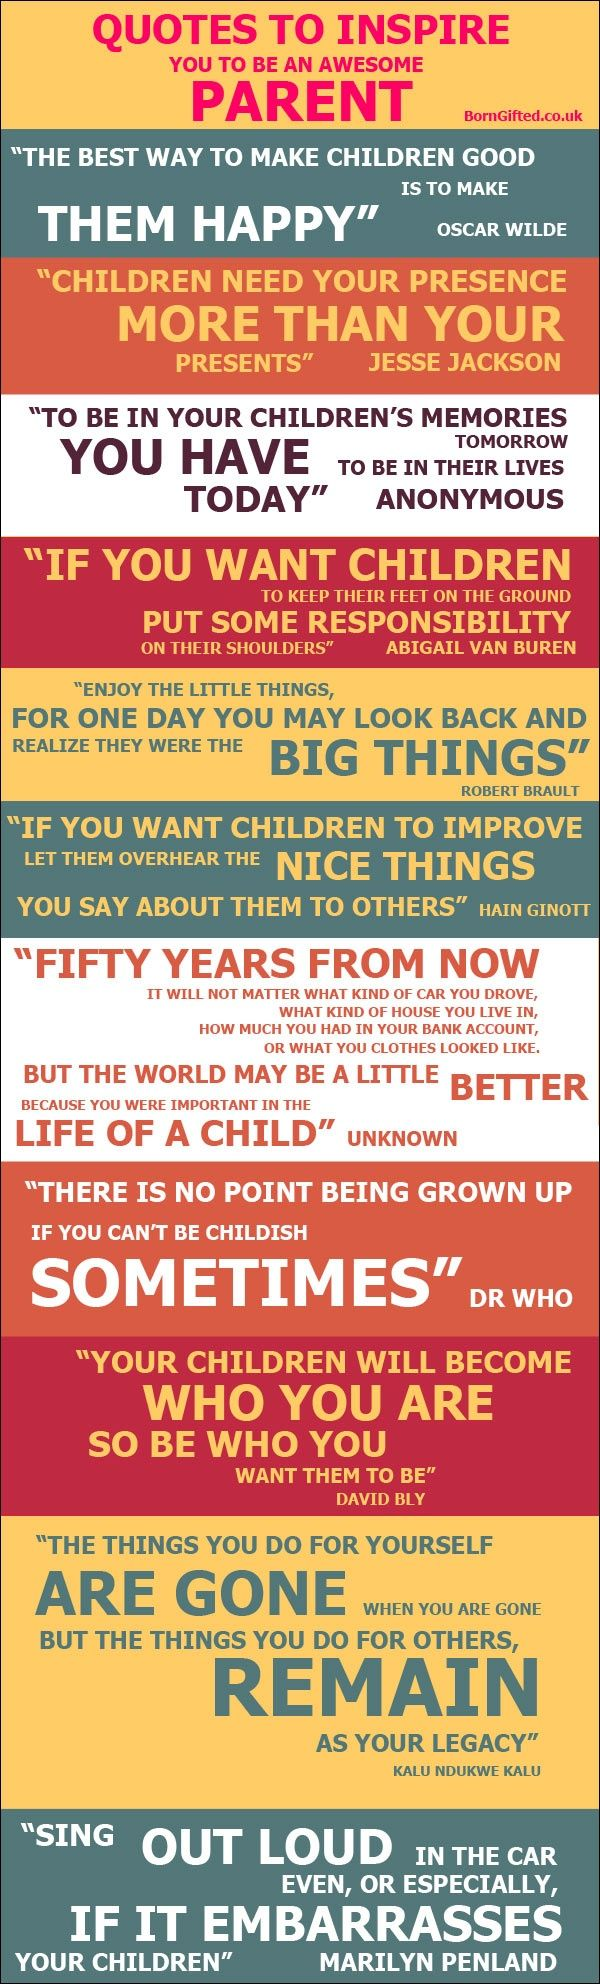 Inspirational Parenting Quotes -- Your Children will become who you are, so be who you want them to be.